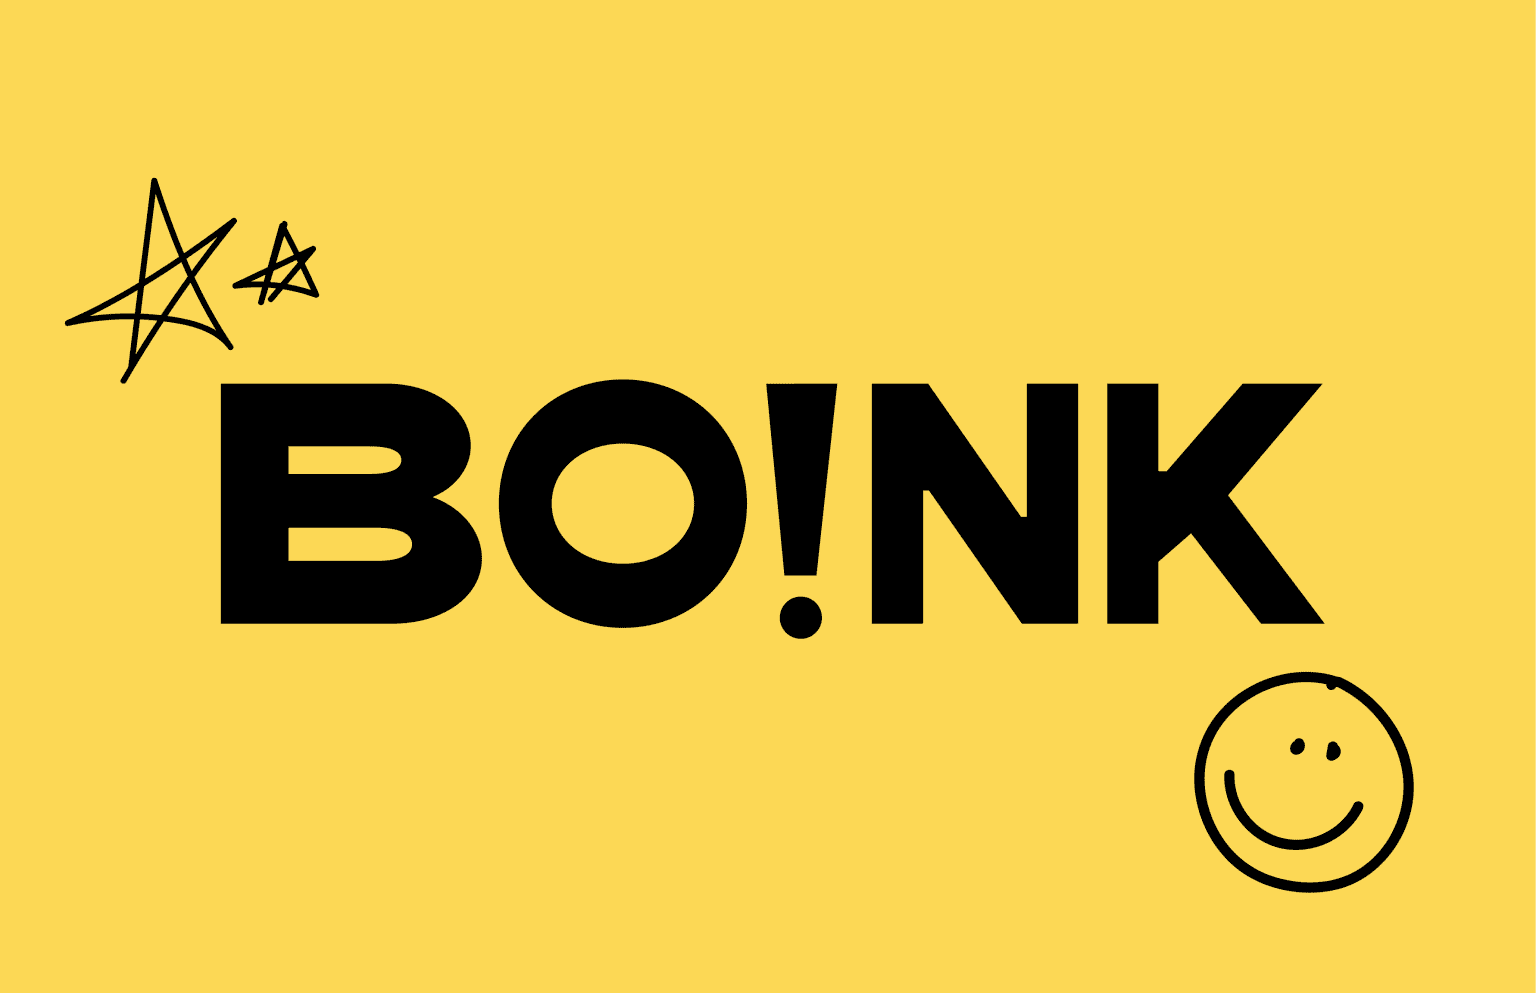 Boink: Not Your Mother's Sex Ed